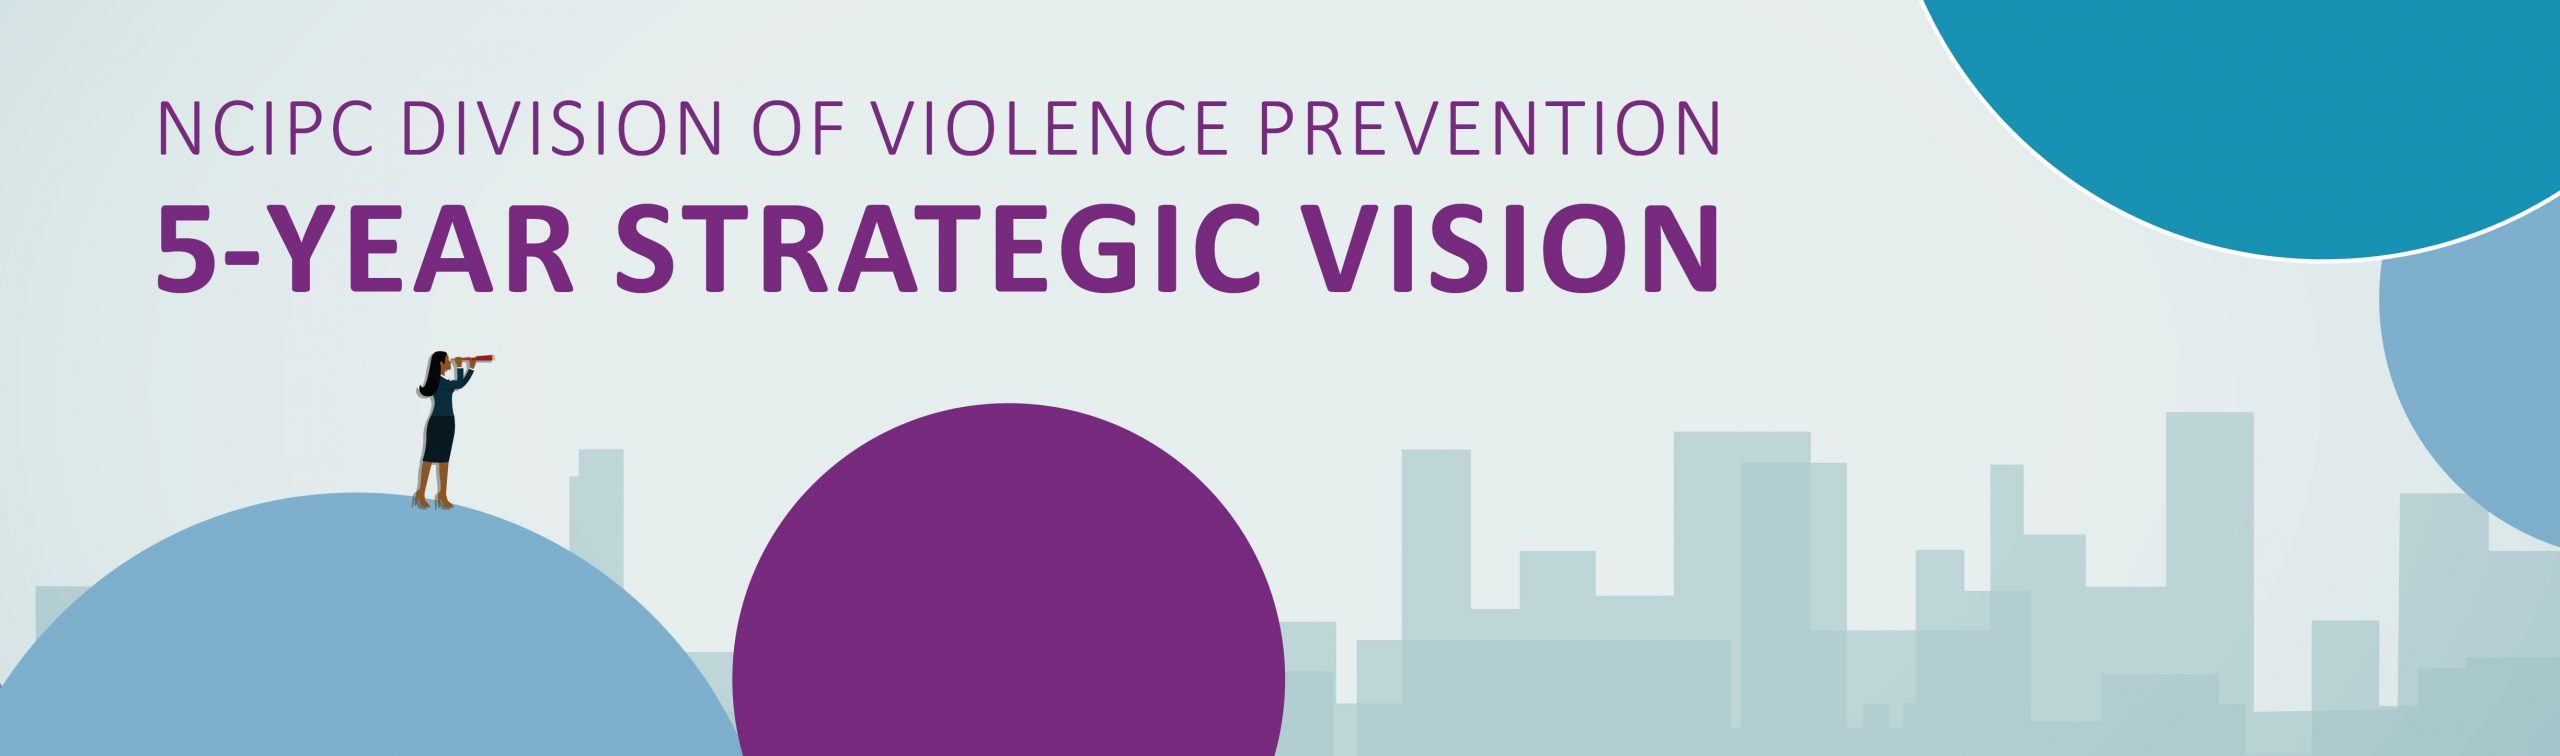 The Division of Violence Prevention's Strategic Vision